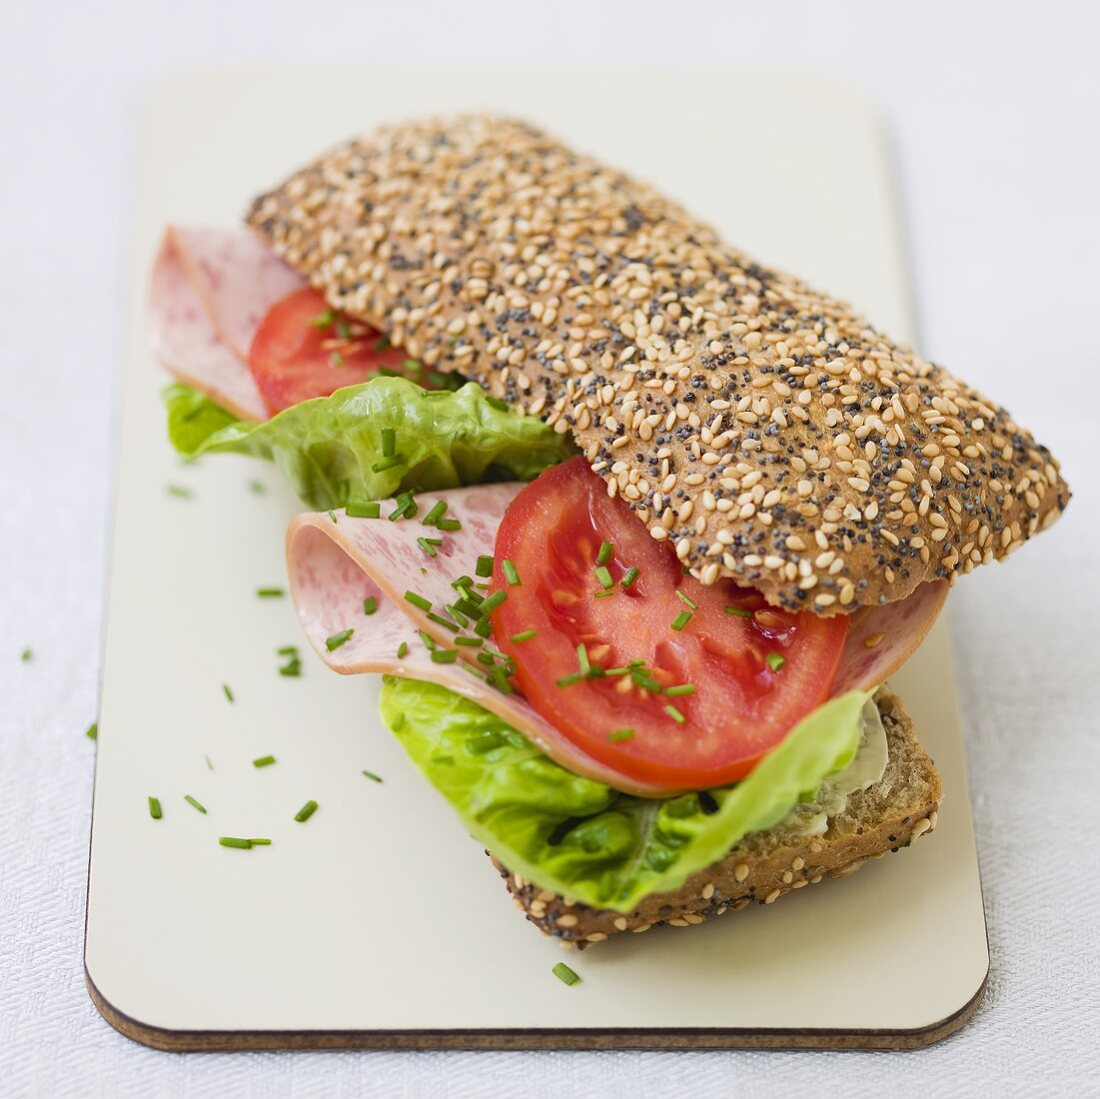 Sliced sausage, lettuce and tomato in wholemeal roll